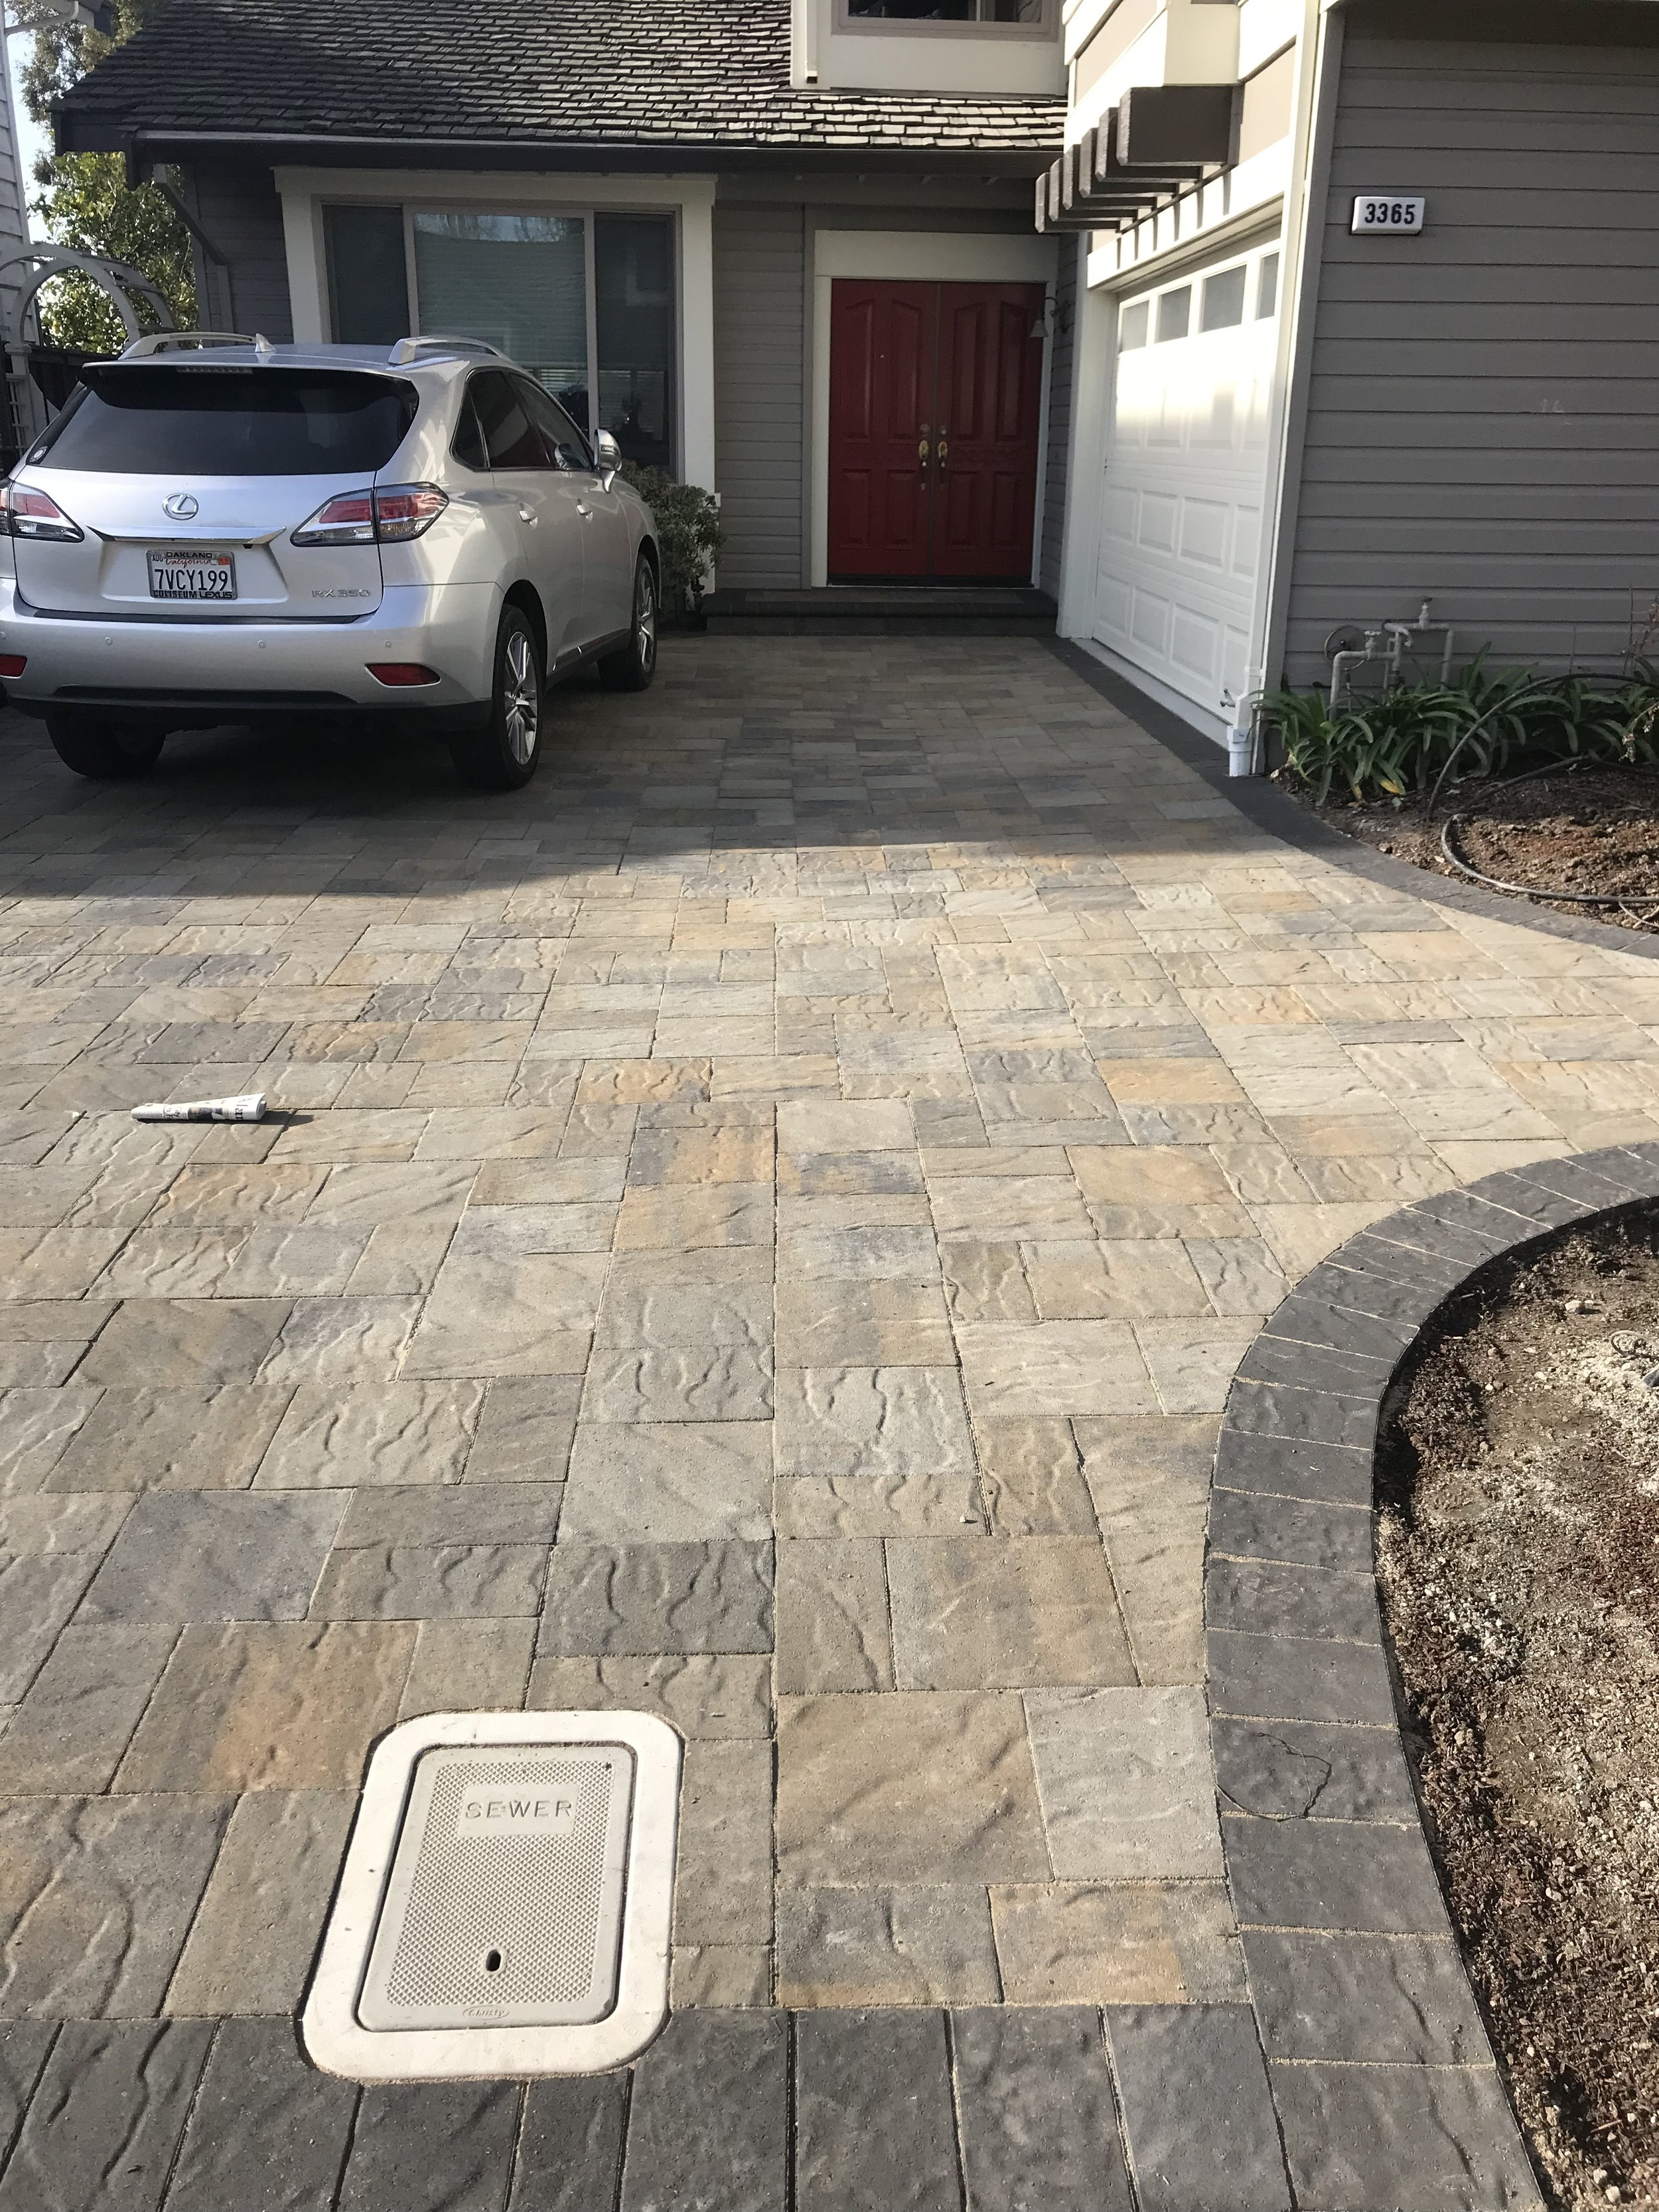 A closer look into the Belgard Avalon Slate Pavers. These pavers provide a nice subtle wavy texture.